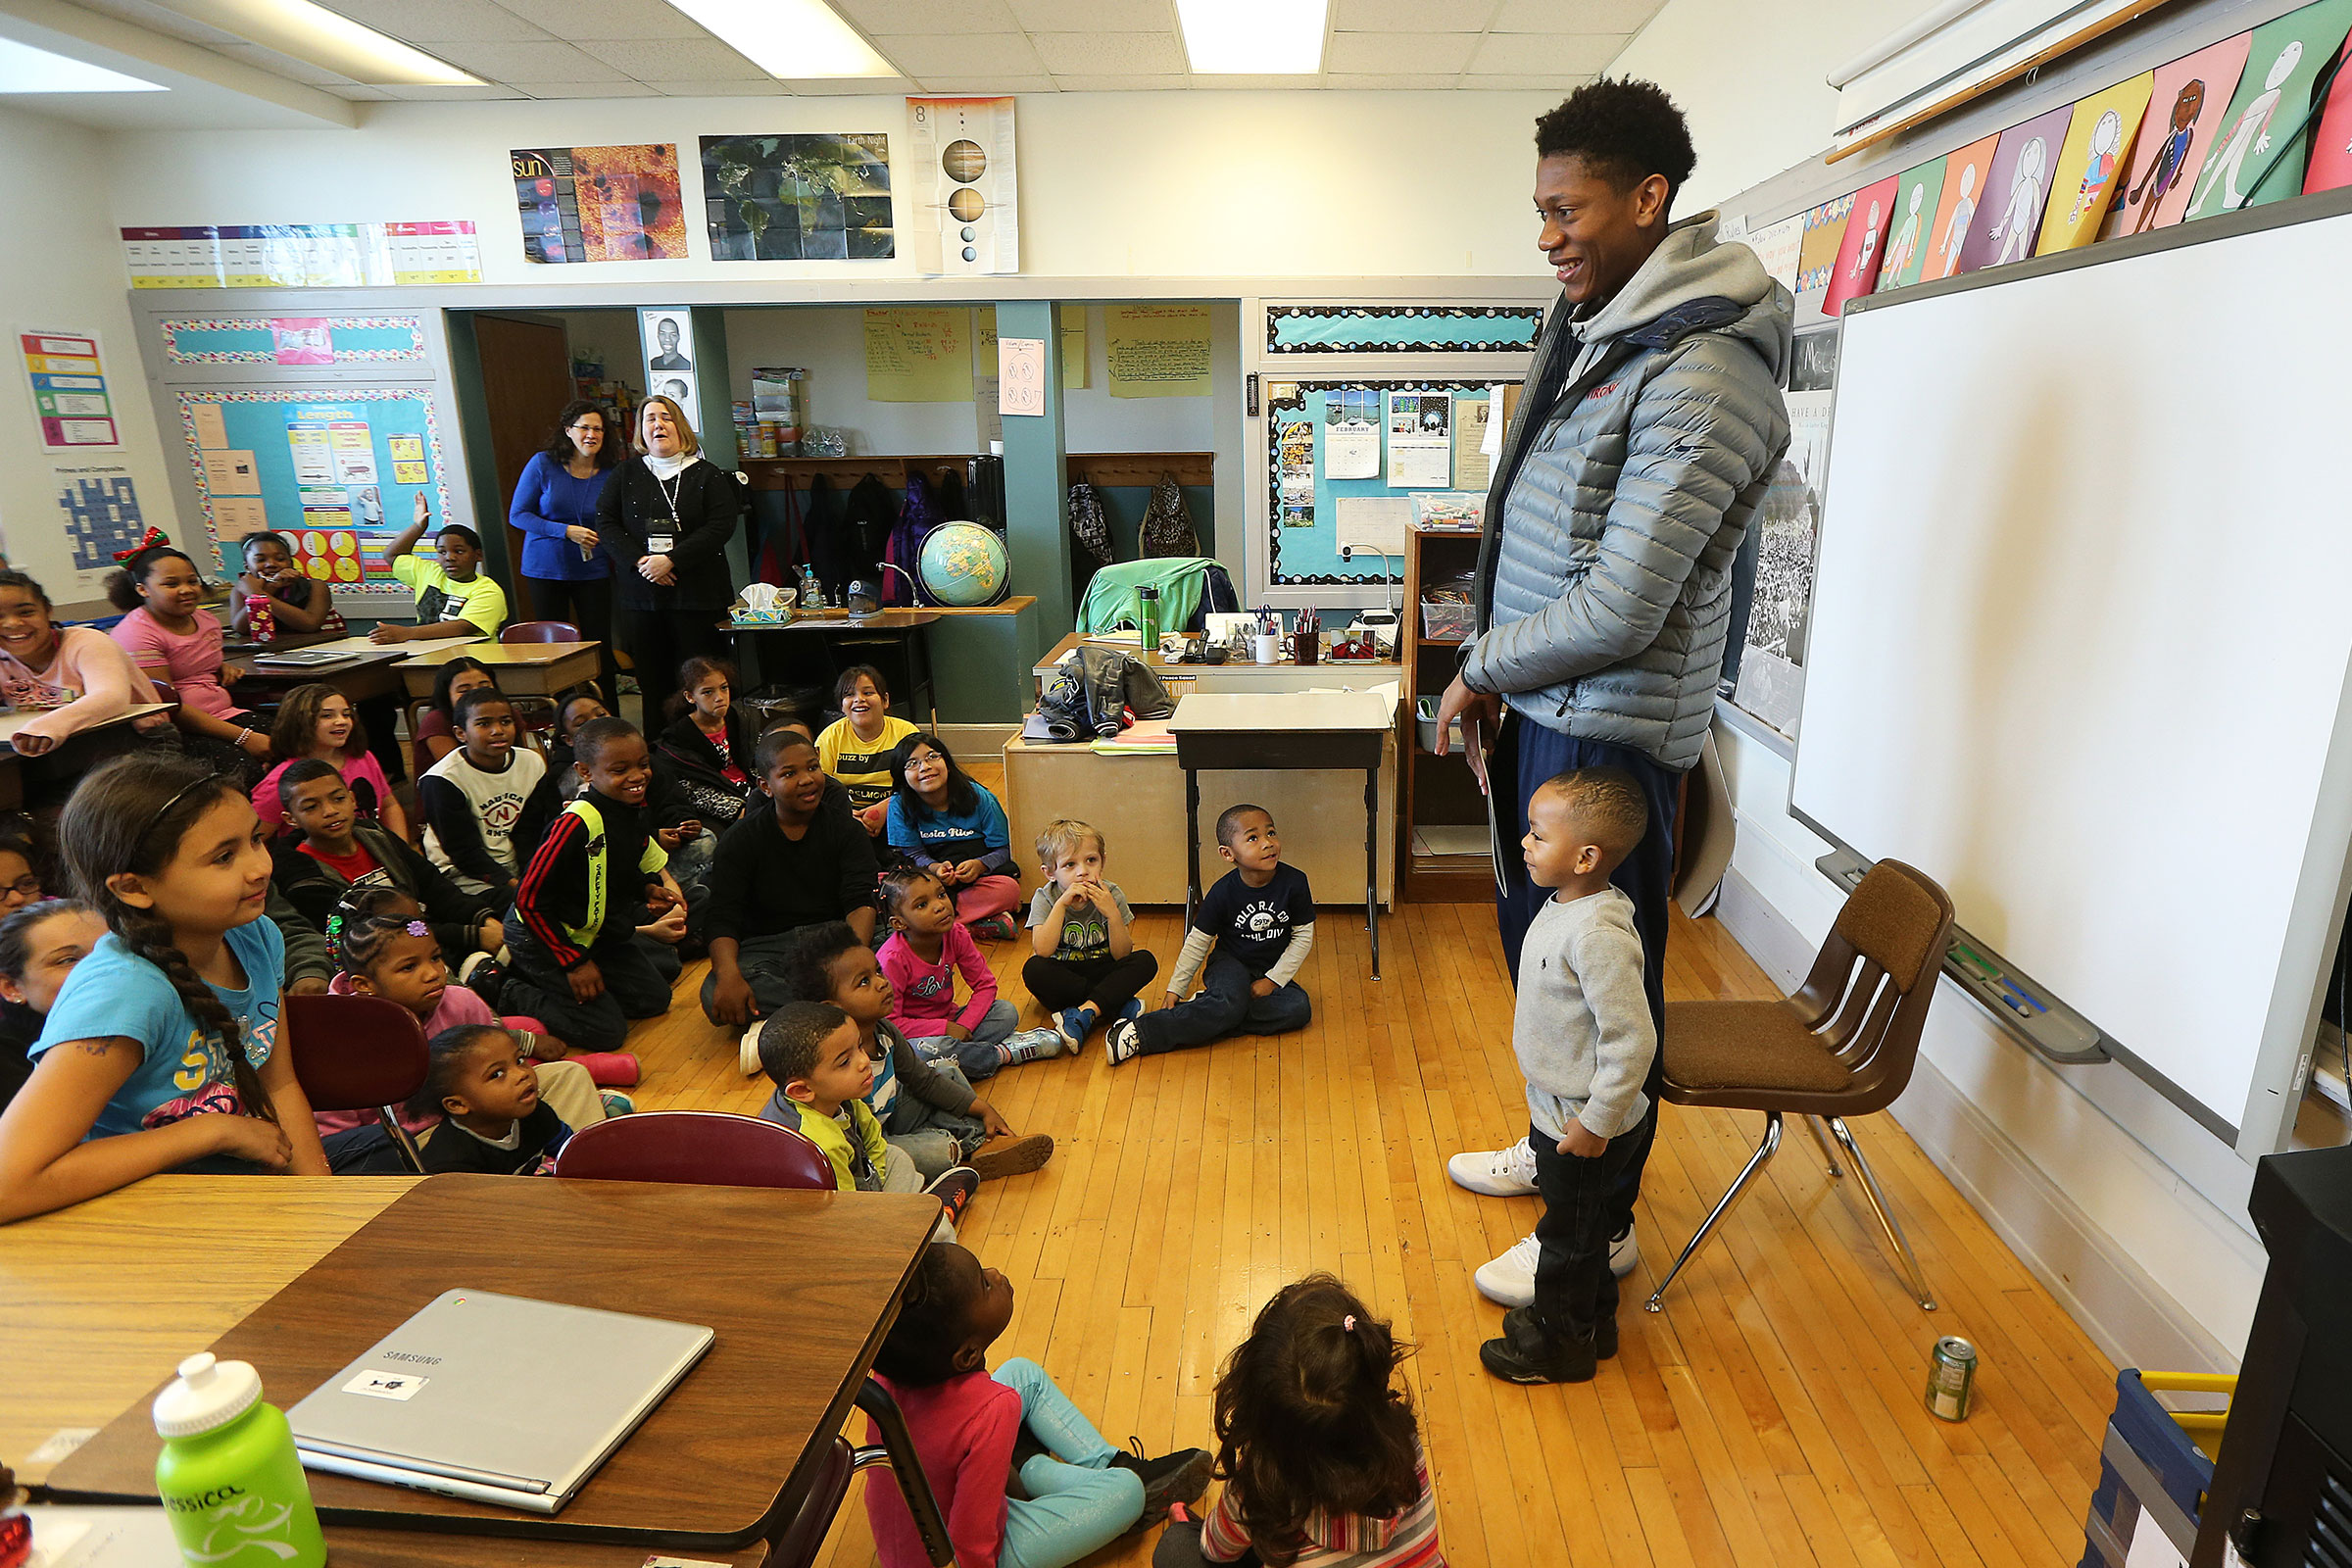 Basketball star DeAndre Hunter – who is making a big impact after injury kept him out of last year's NCAA Tournament – didn't let the height difference stop him from entertaining these elementary schoolers.